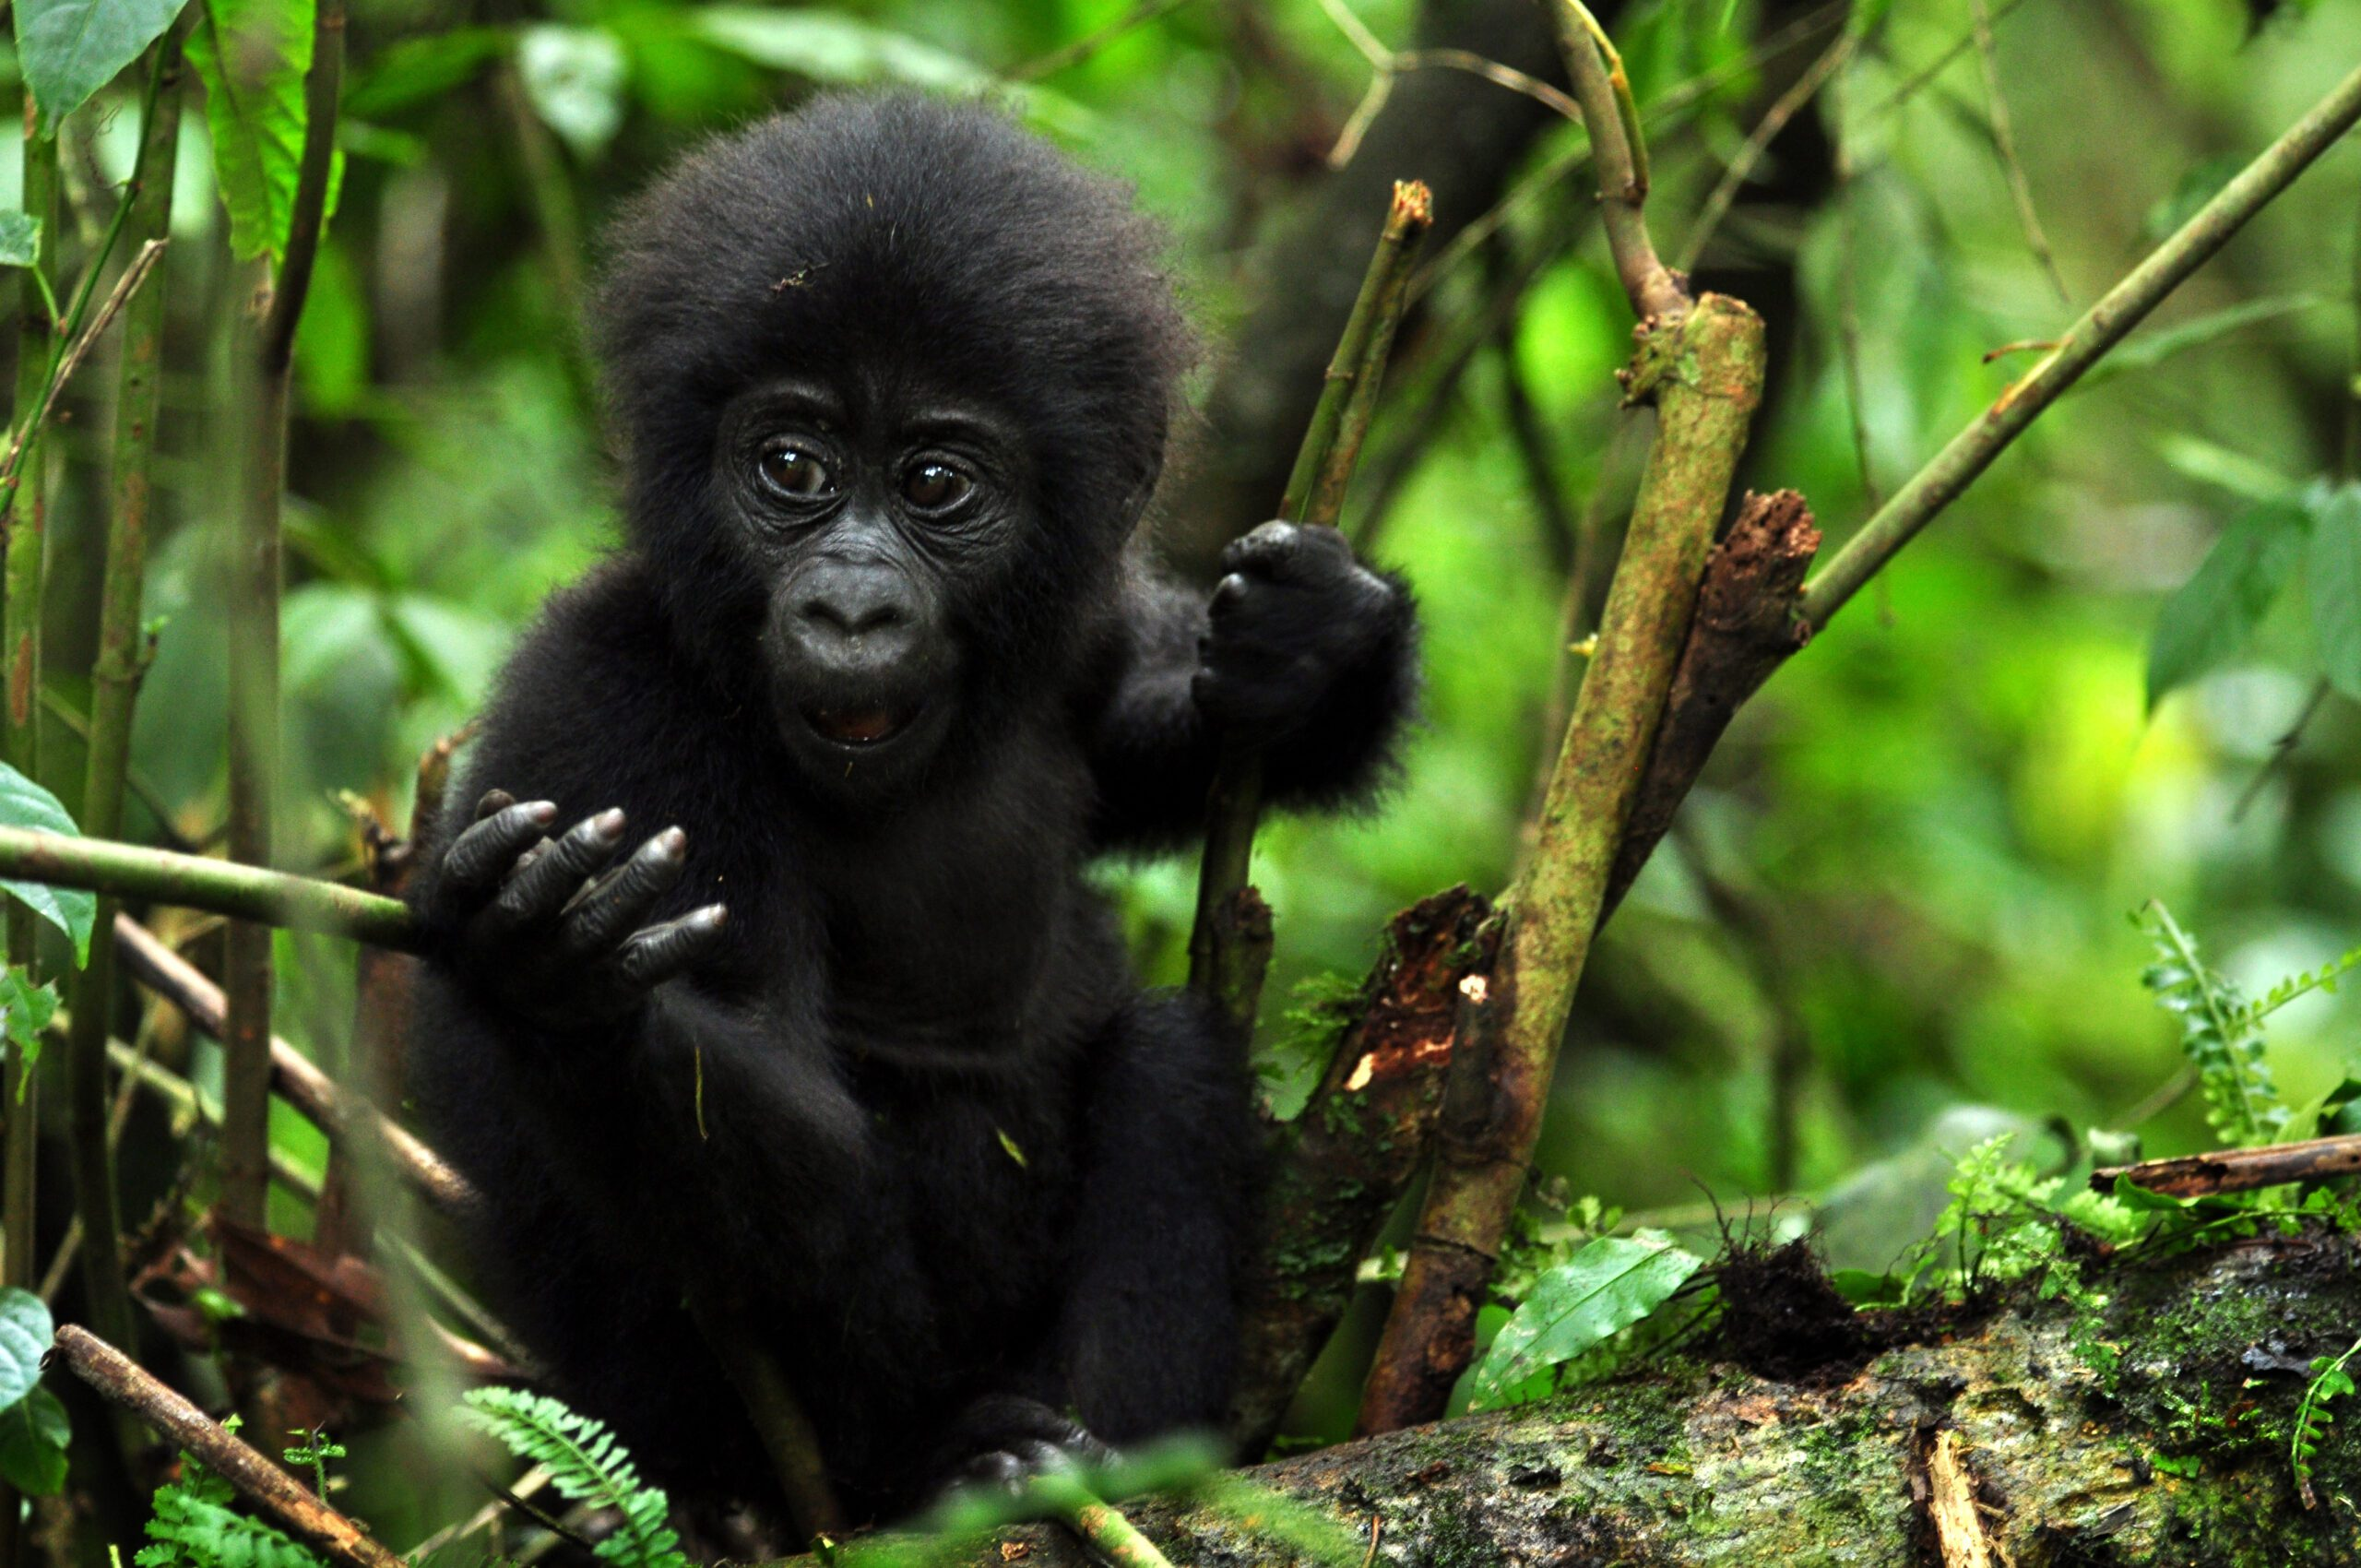 Baby Gorilla in a tree looking at the camera